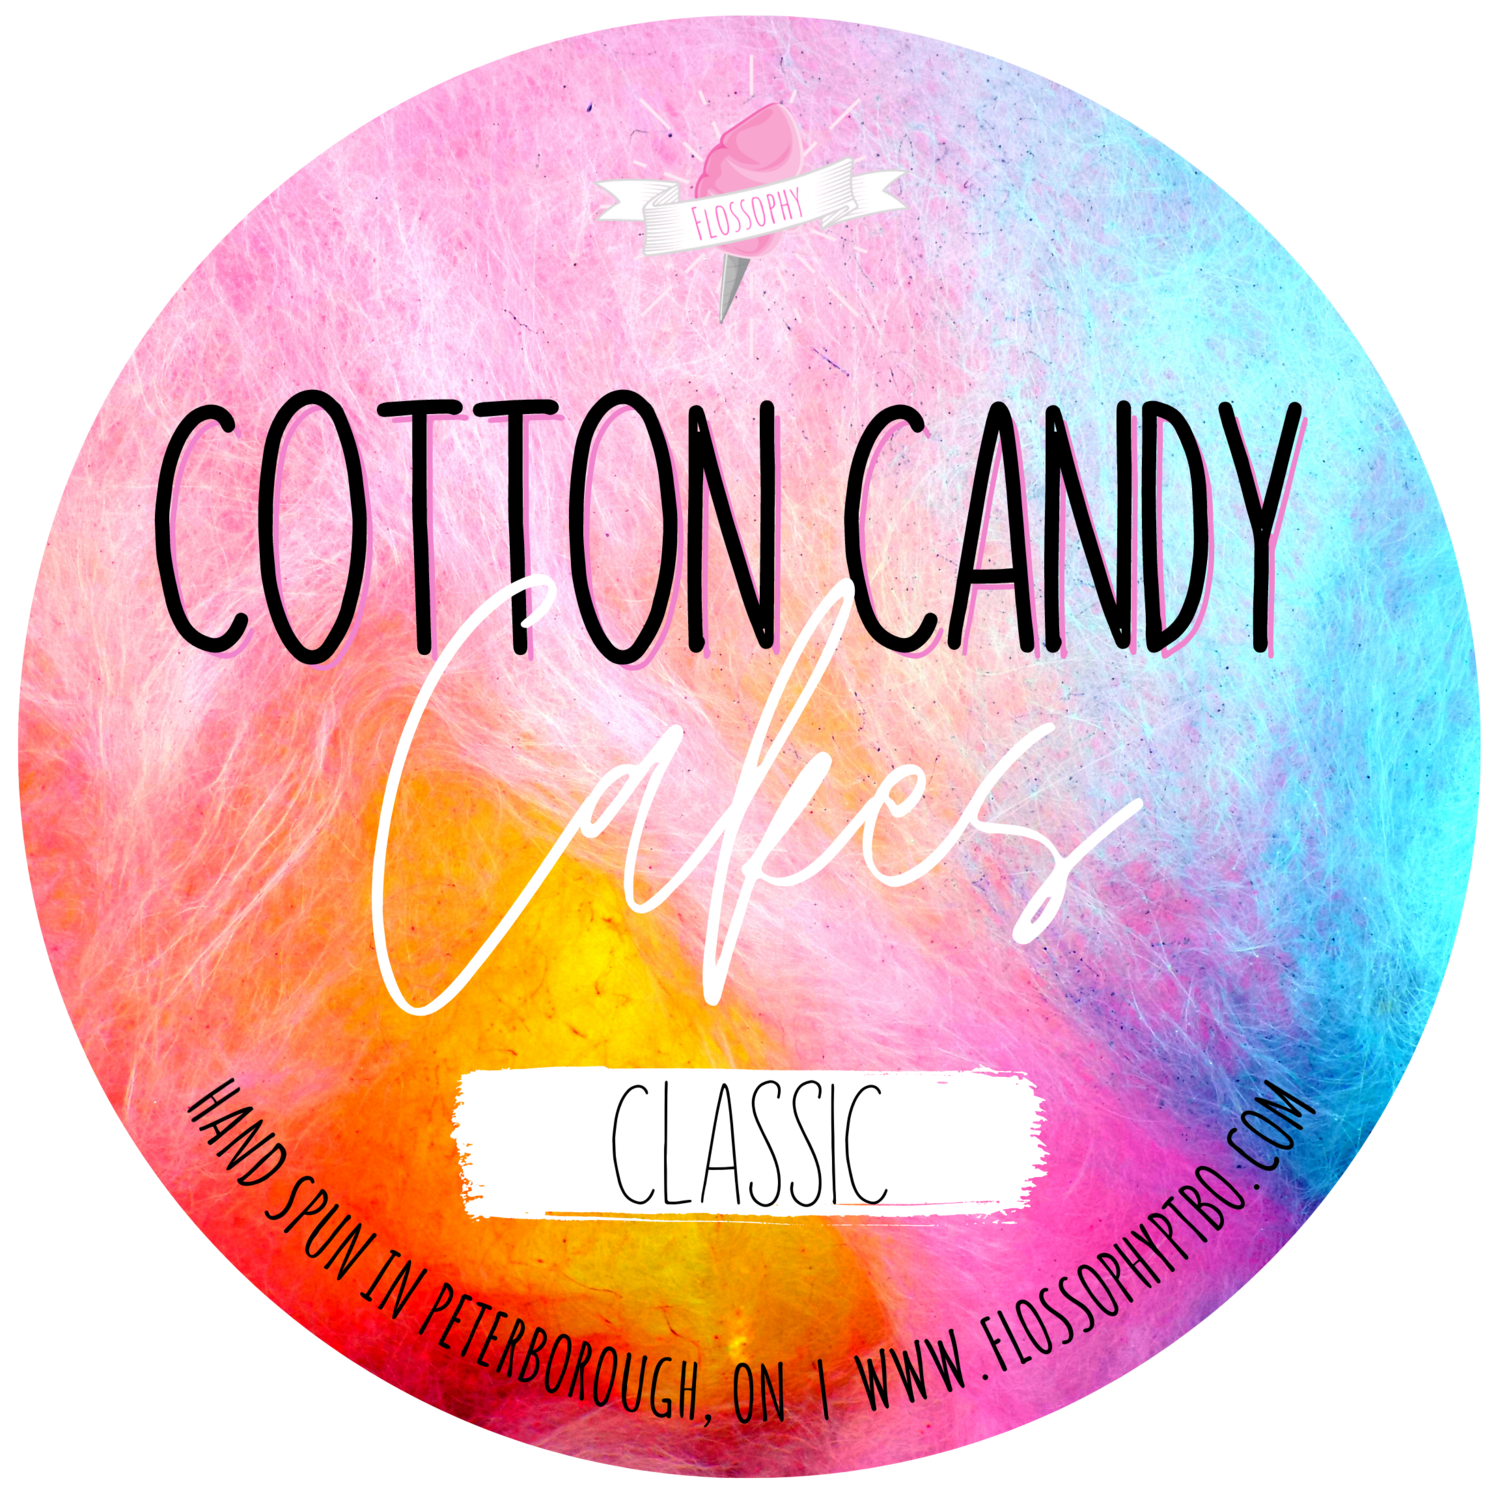 Cotton Candy Cake [CLASSIC]